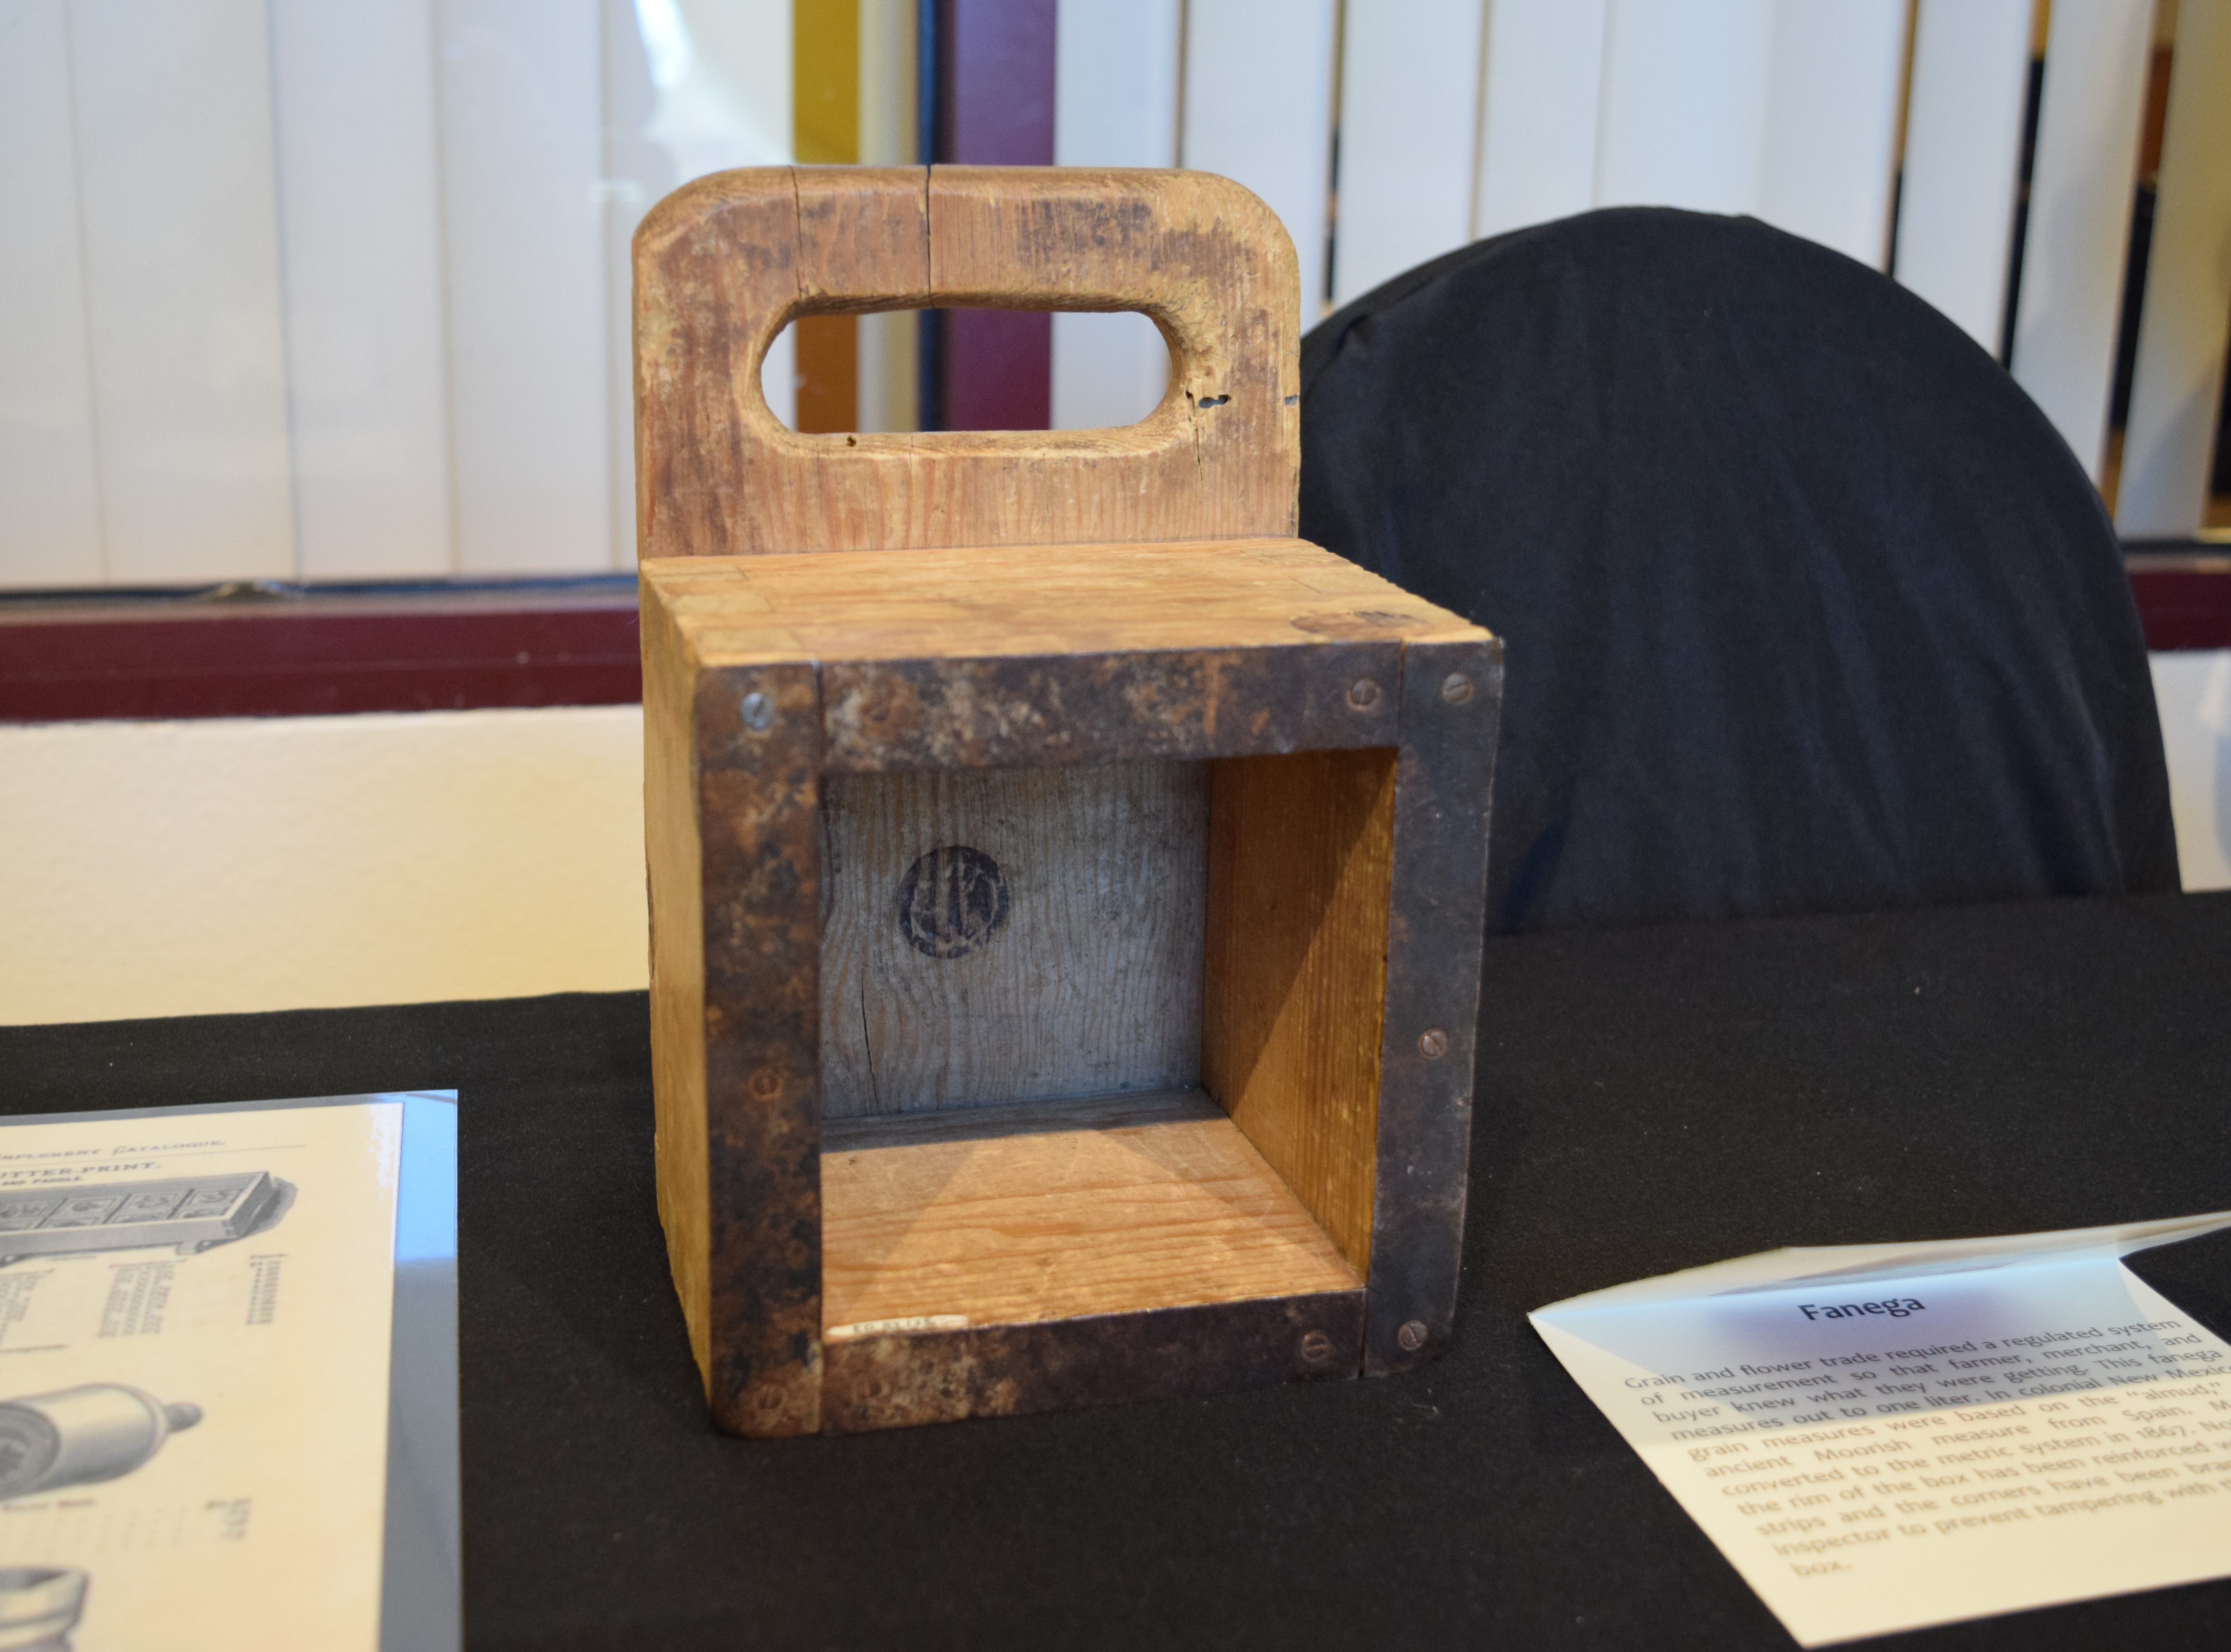 A tool for measuring, the fanega was an instrument used to help regulate grain and flour trade. This fanega measures out one liter for farmers, merchants and buyers. The rim of the box was reinforced with metal strips and the corners were branded by an inspector to prevent tampering. — Antiques Treasures Show at the Farm and Ranch Heritage Museum, Jan. 26, 2019.